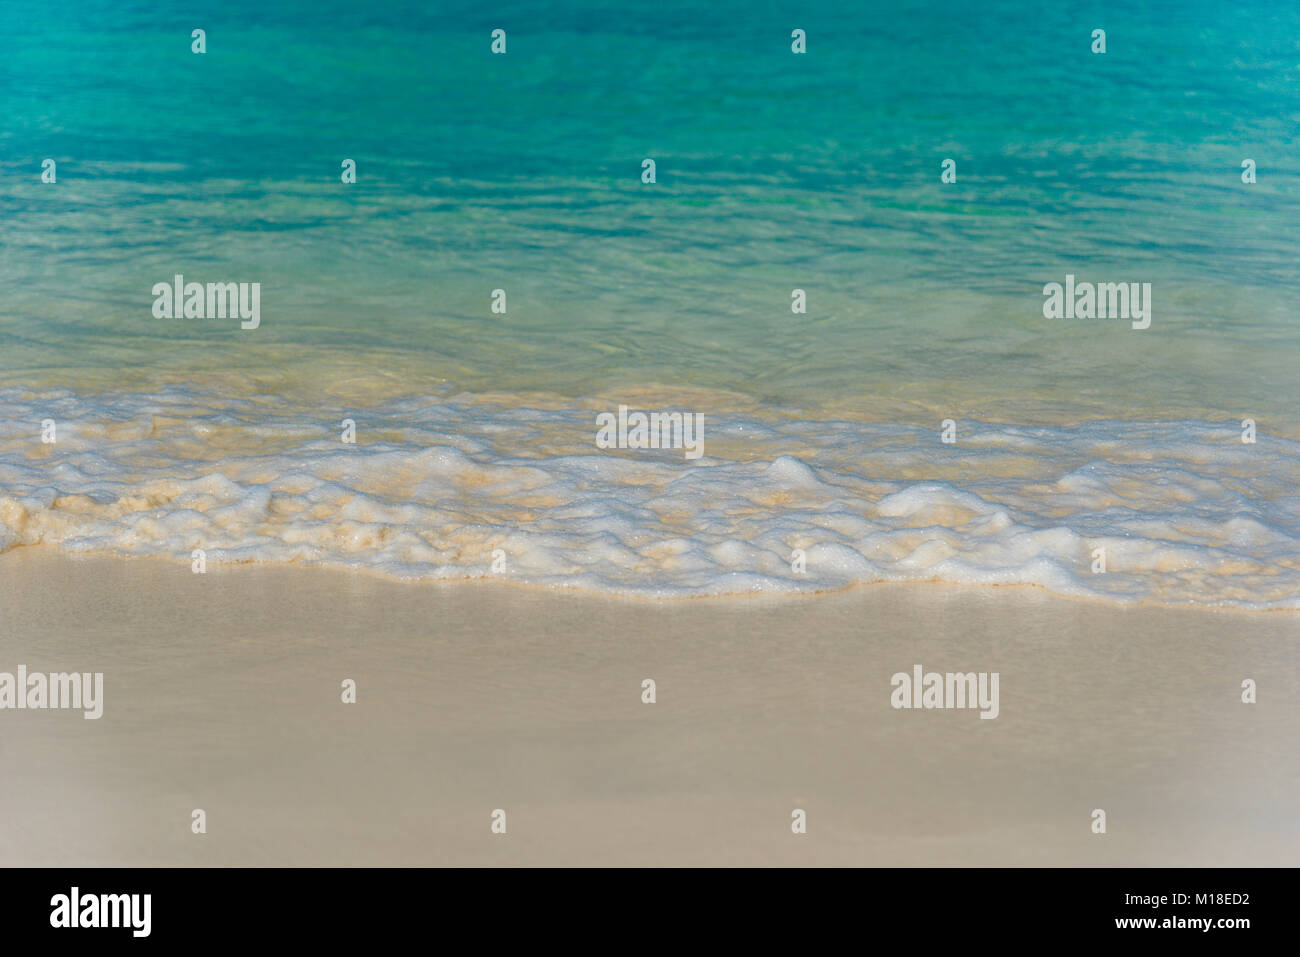 Eagle Beach Aruba Stock Photos Amp Eagle Beach Aruba Stock